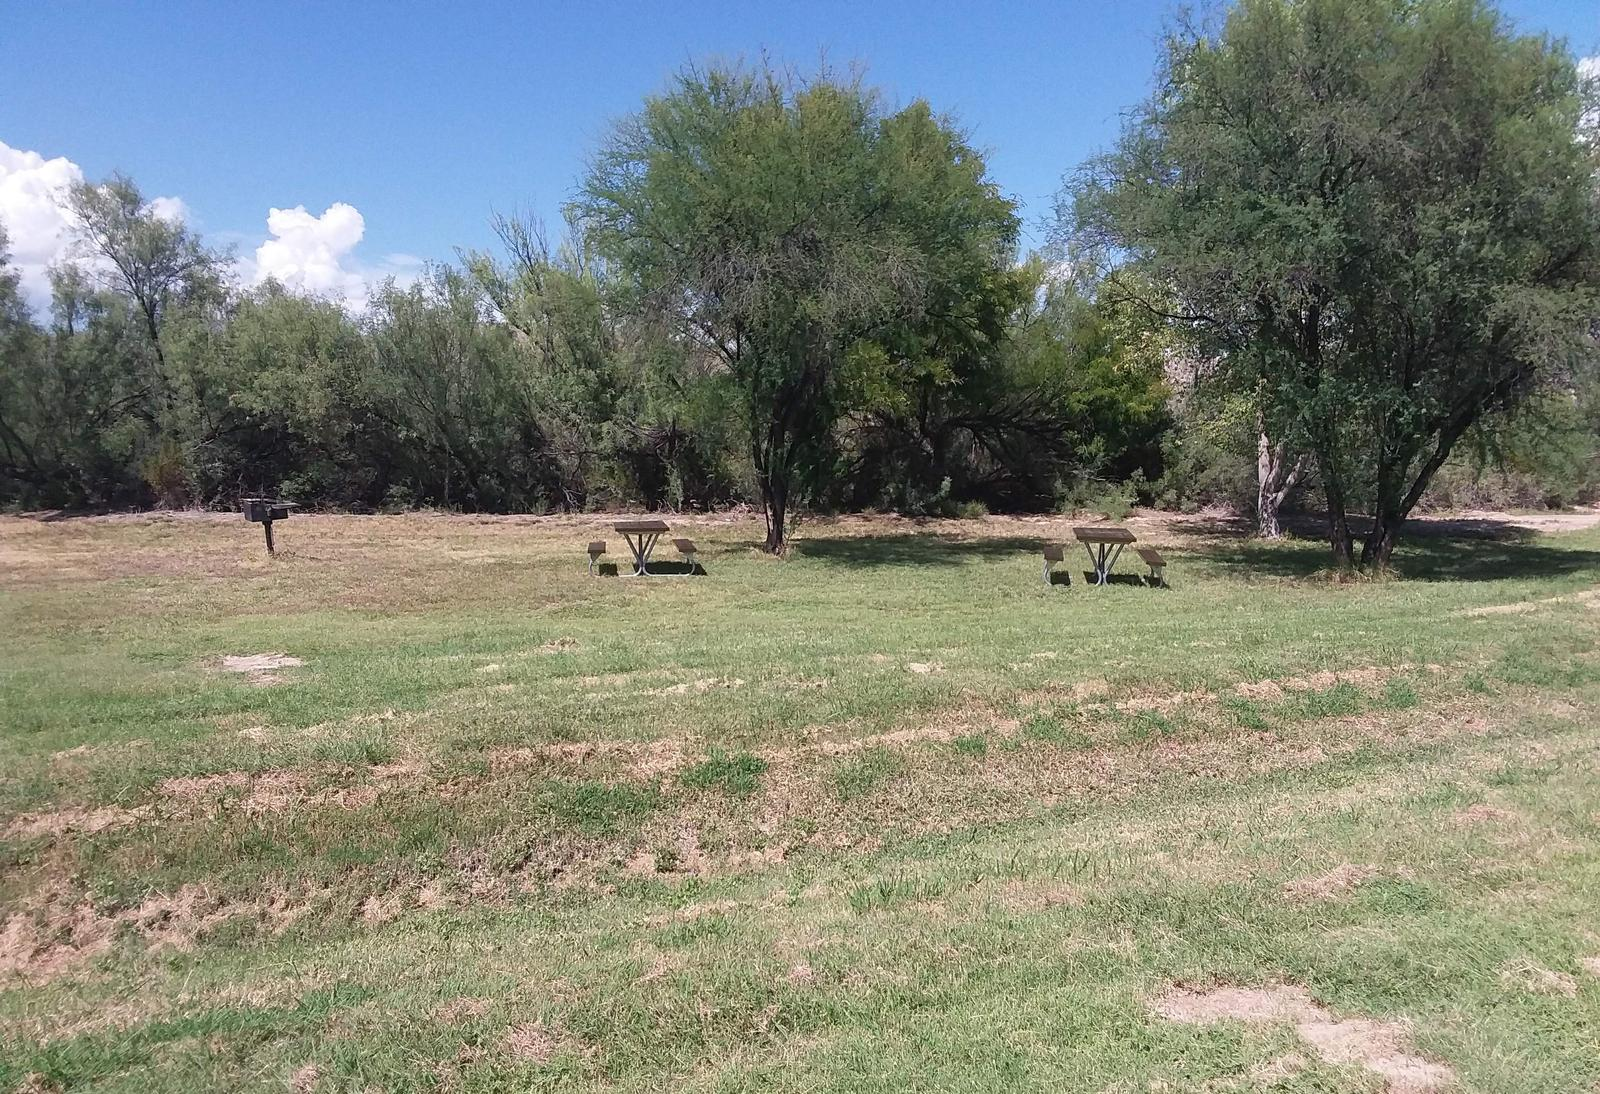 Flat, grassy area with picnic tables and a raised grill